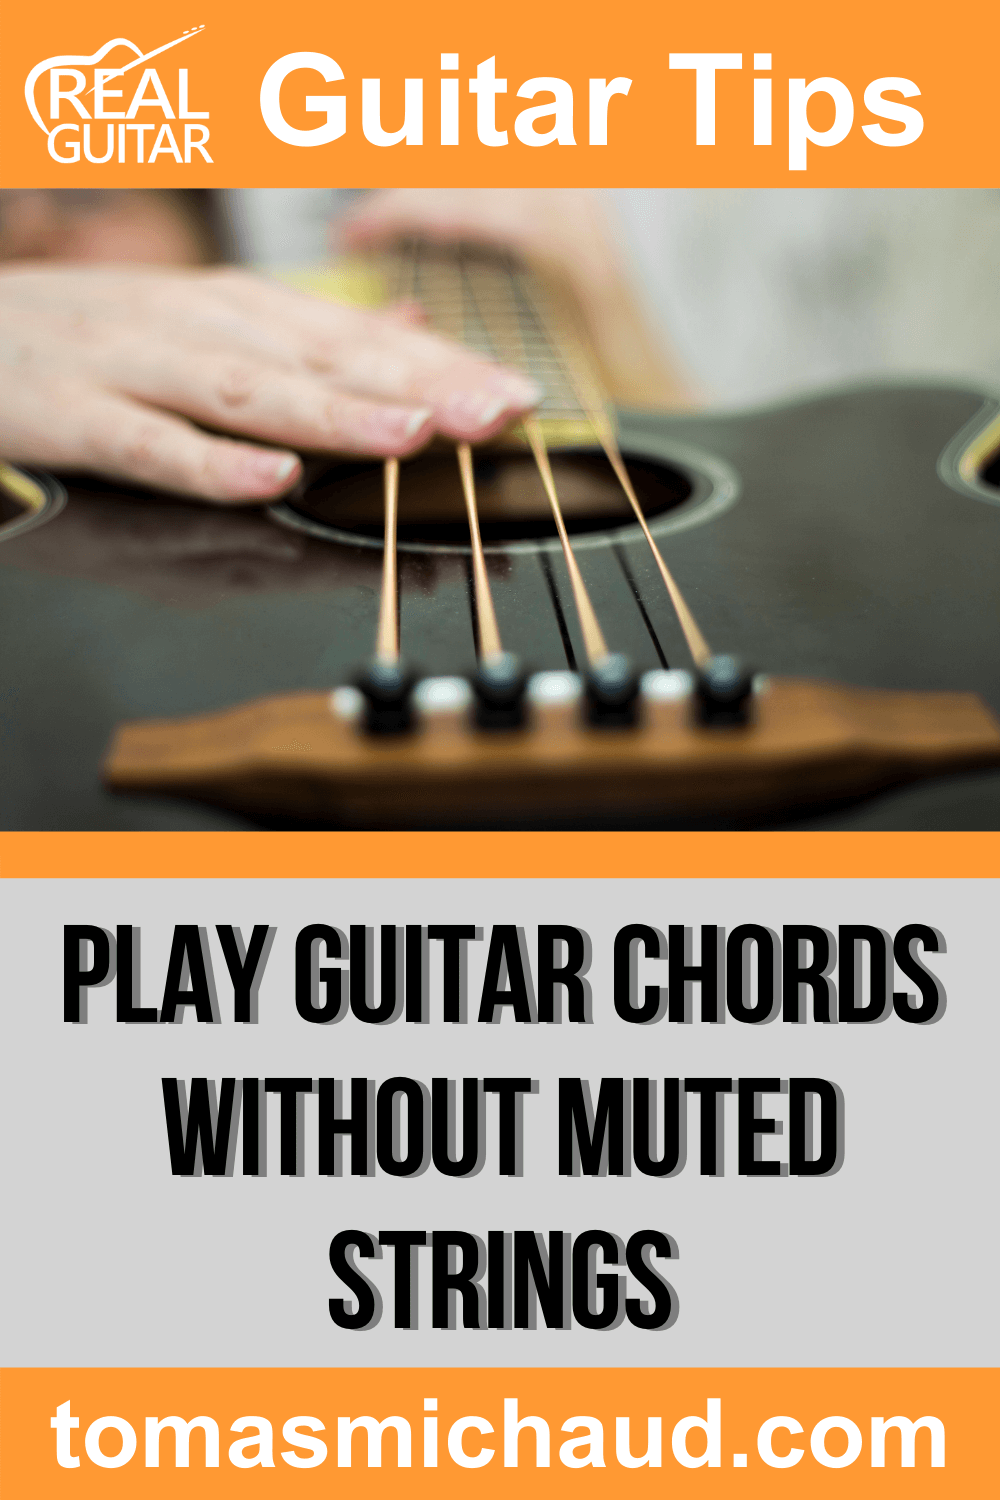 Play Guitar Chords Without Muted Strings